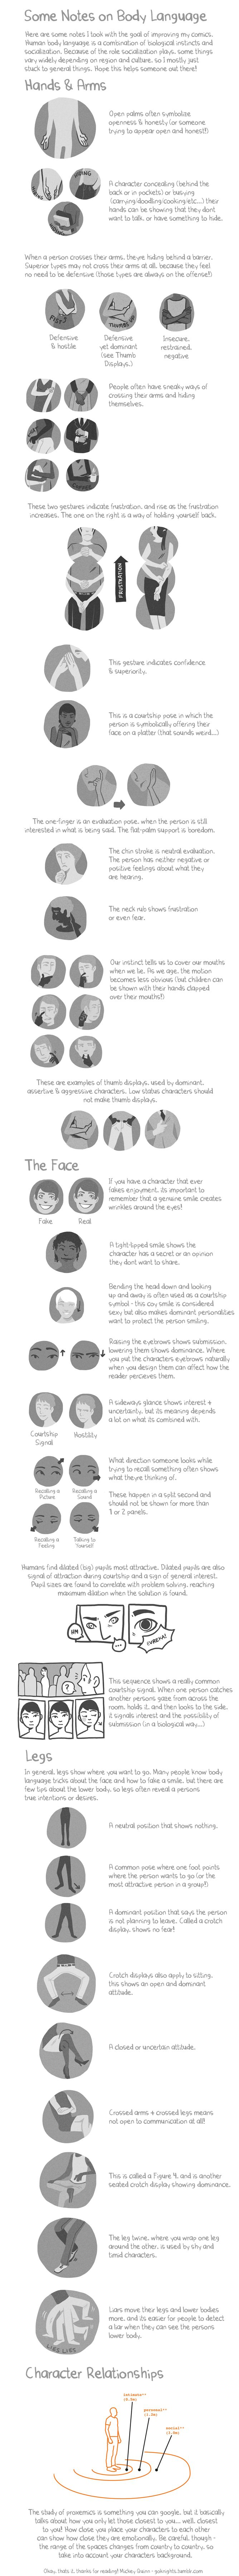 Body Language Reference Sheet - Writers Write.  This was written for comic artists but will probably work well with kids who have a hard job reading emotions. Wonder if anyone has ever made a game matching facial expressions and the words describing them?